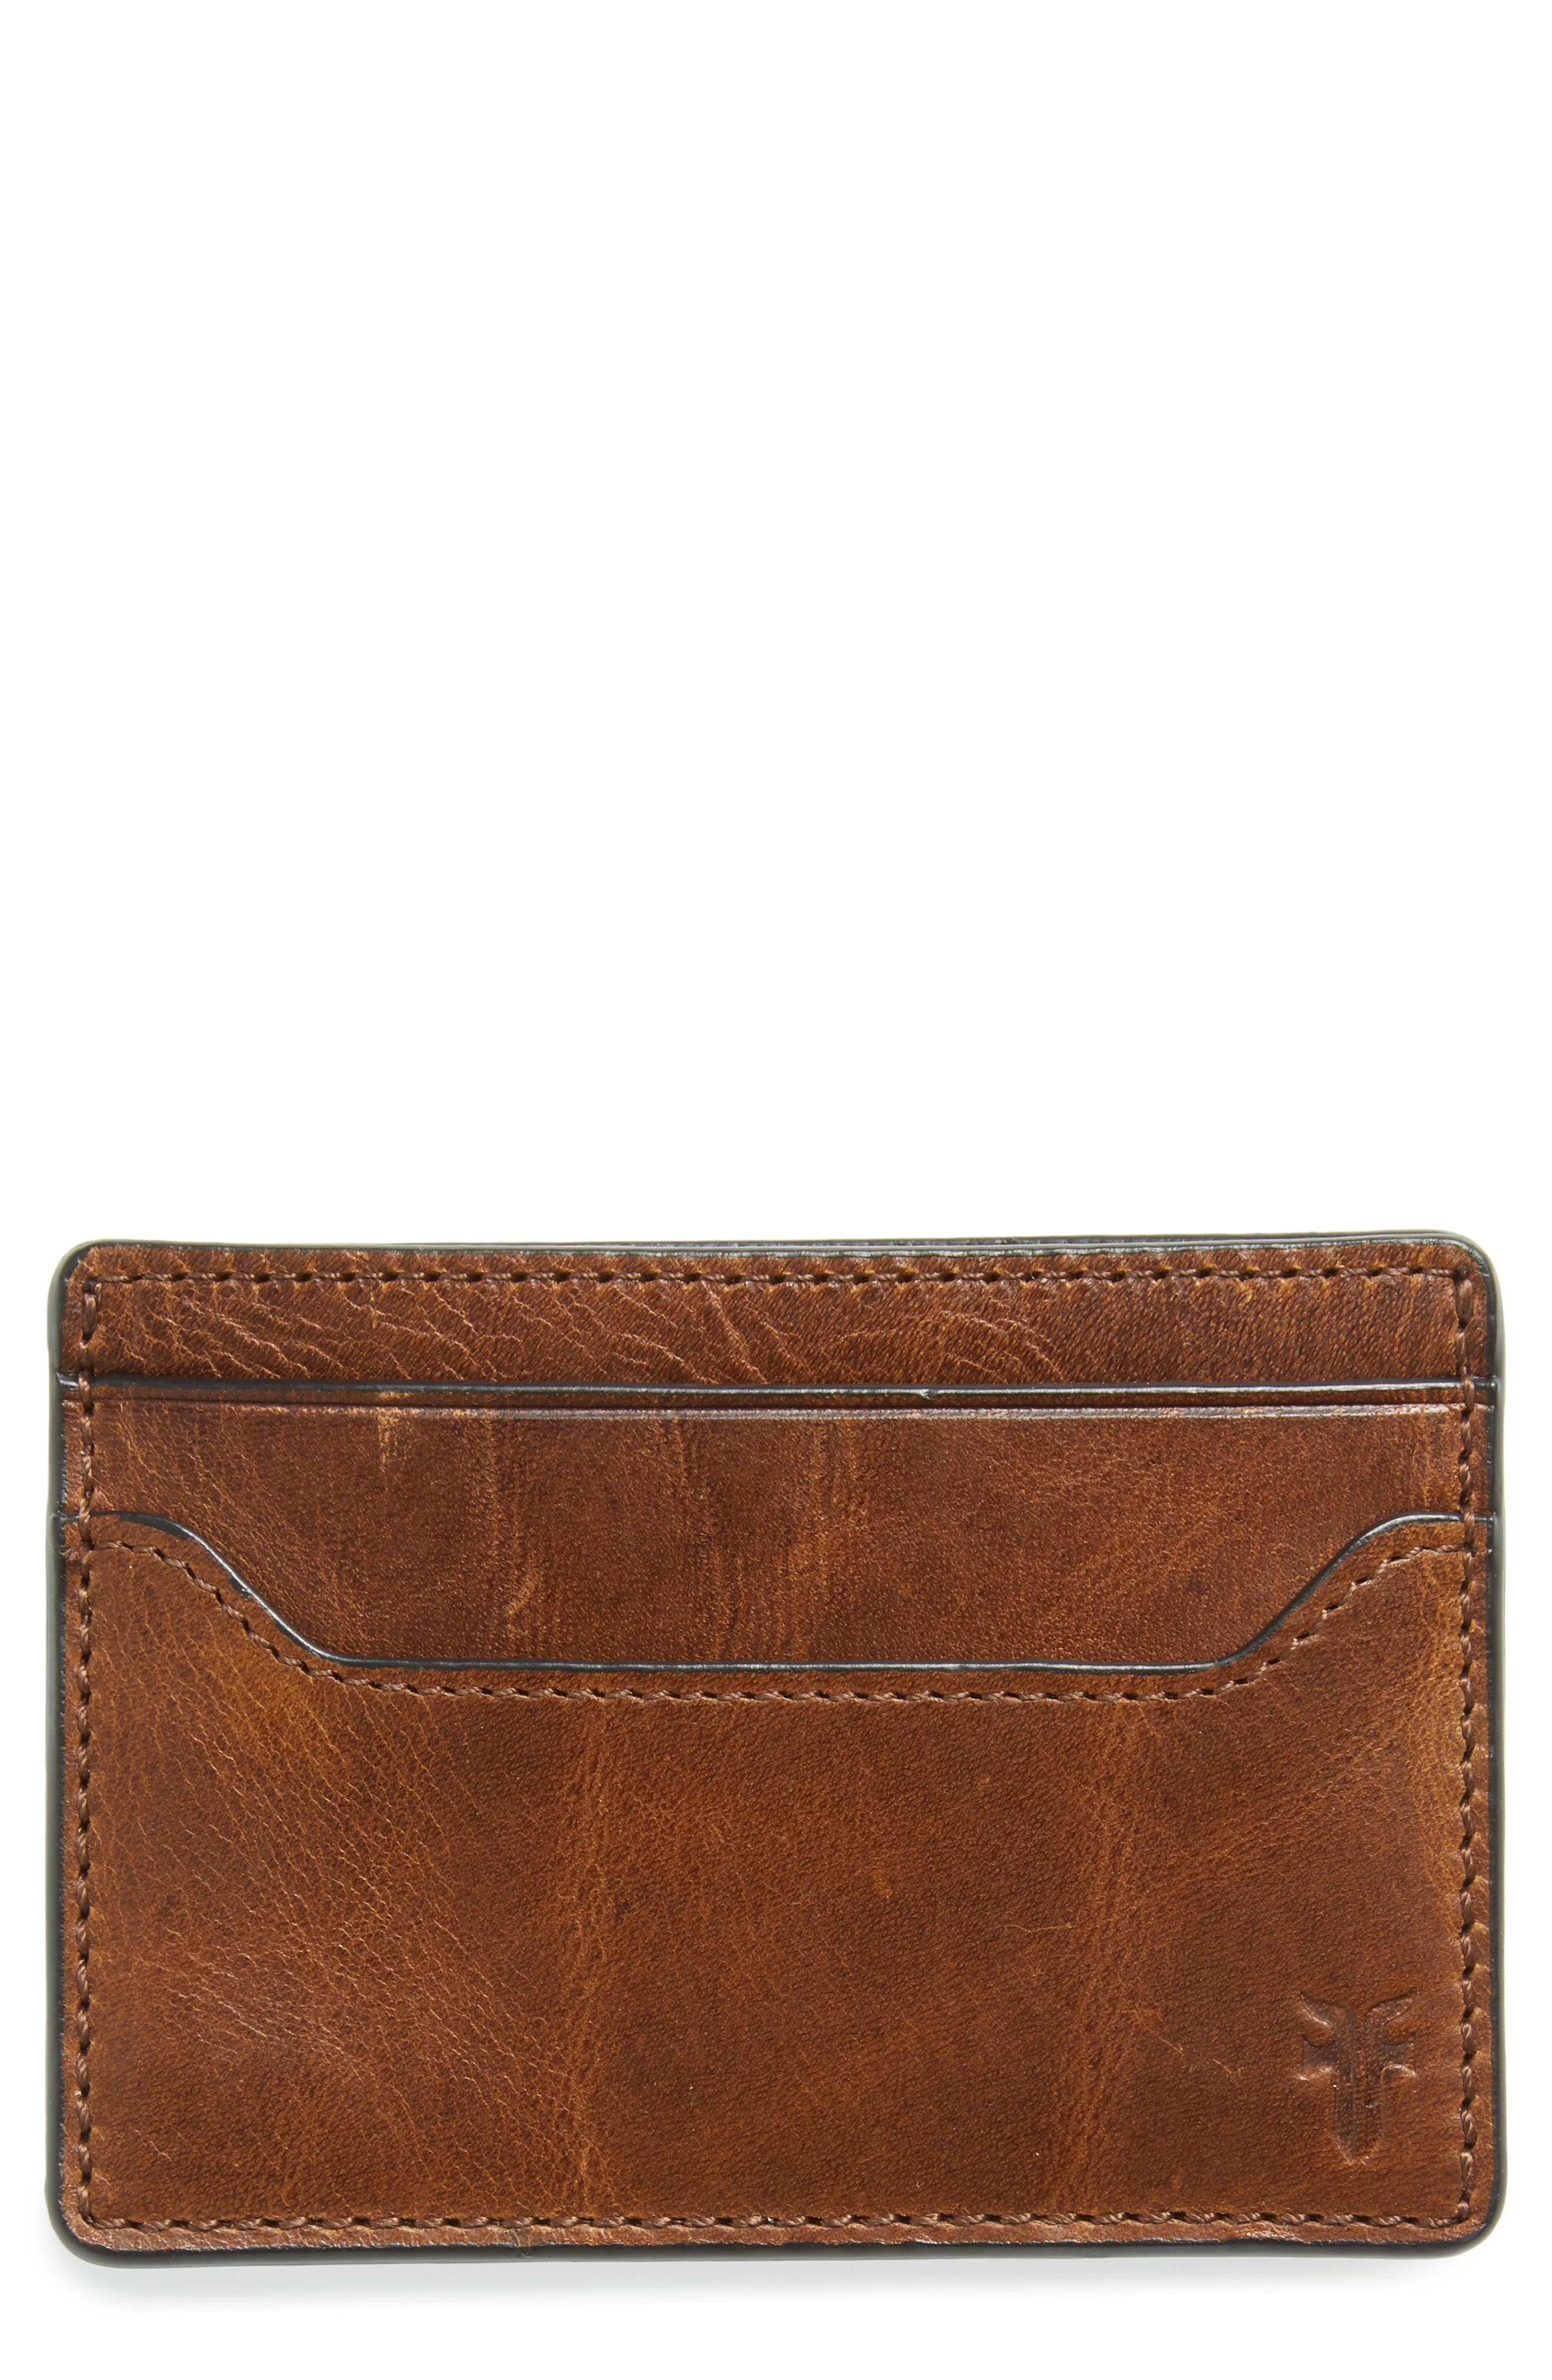 Logan Leather Money Clip Card Case,                         Main,                         color, DARK BROWN